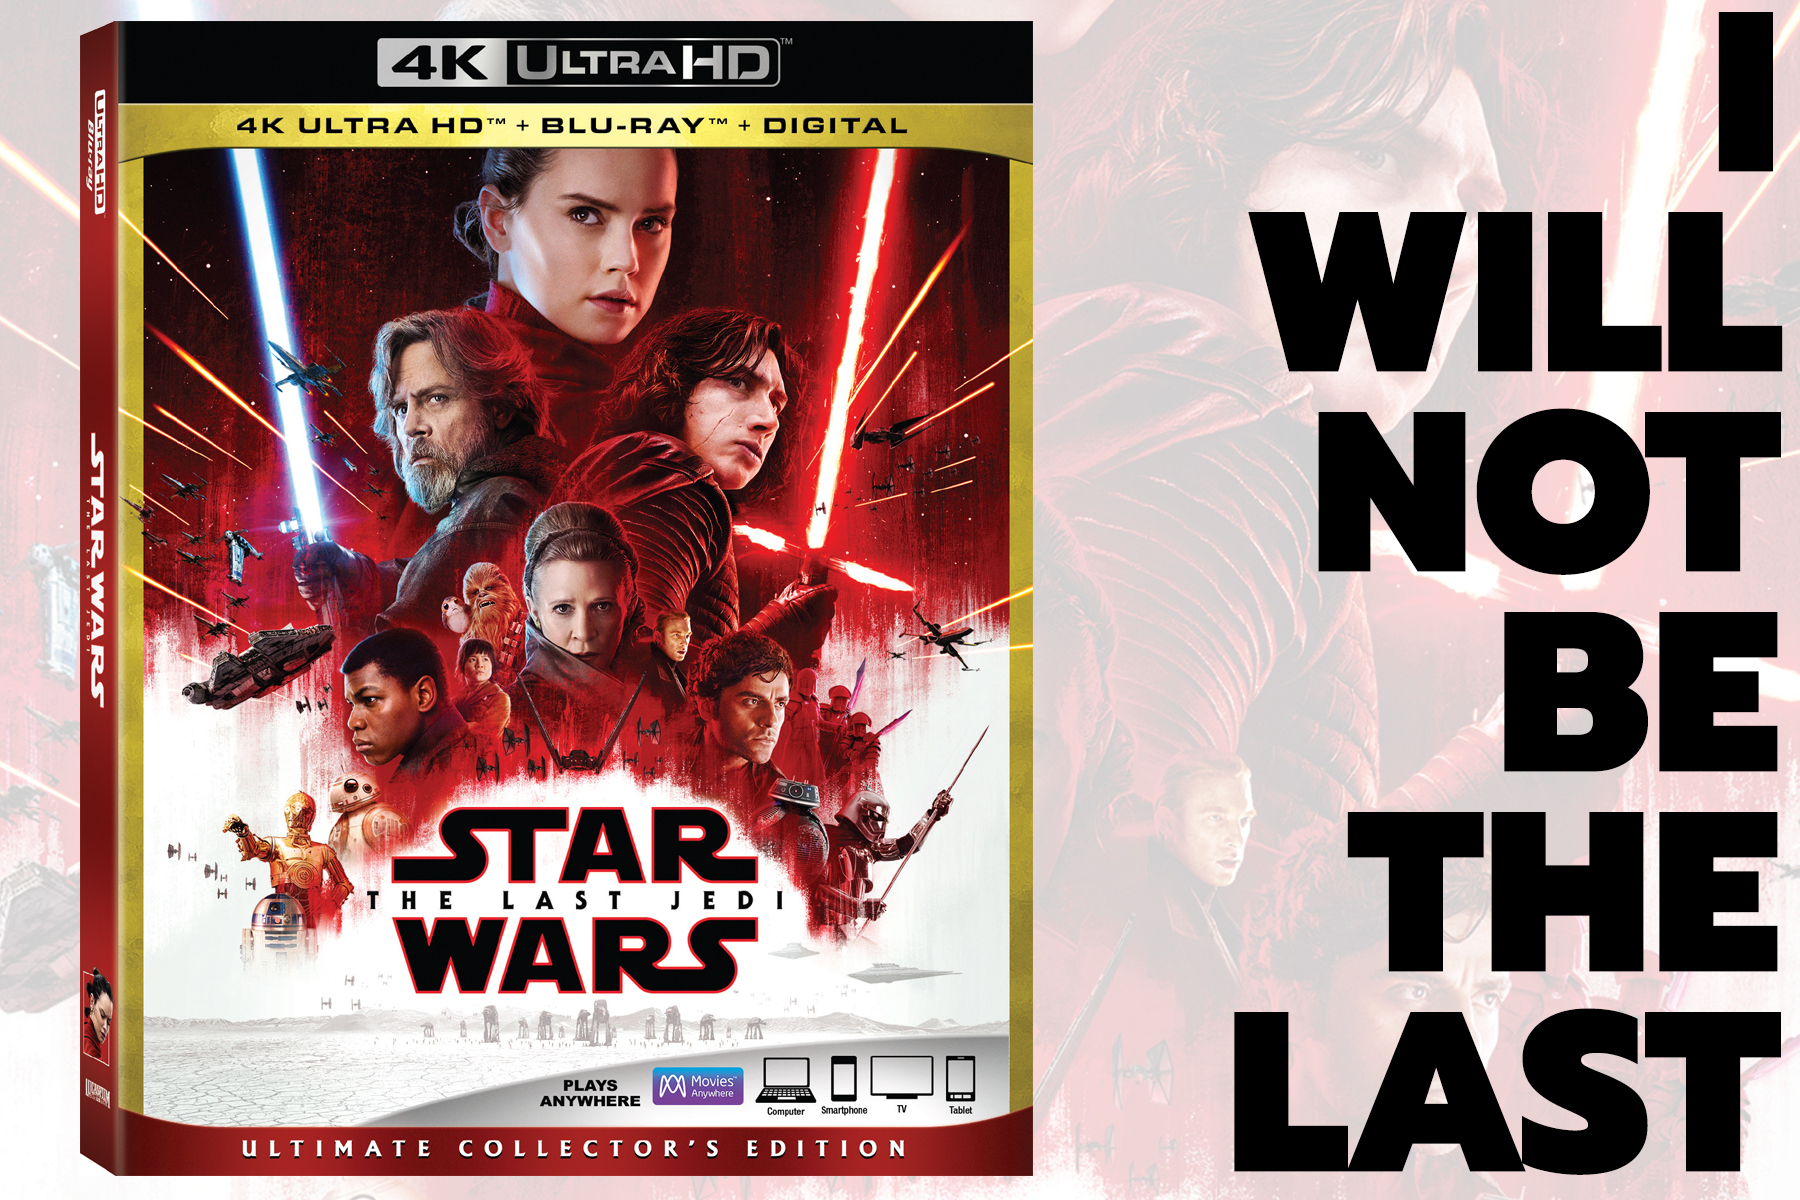 Star Wars: The Last Jedi Debuts on Movies Anywhere March 13, and on Blu-ray March 27!